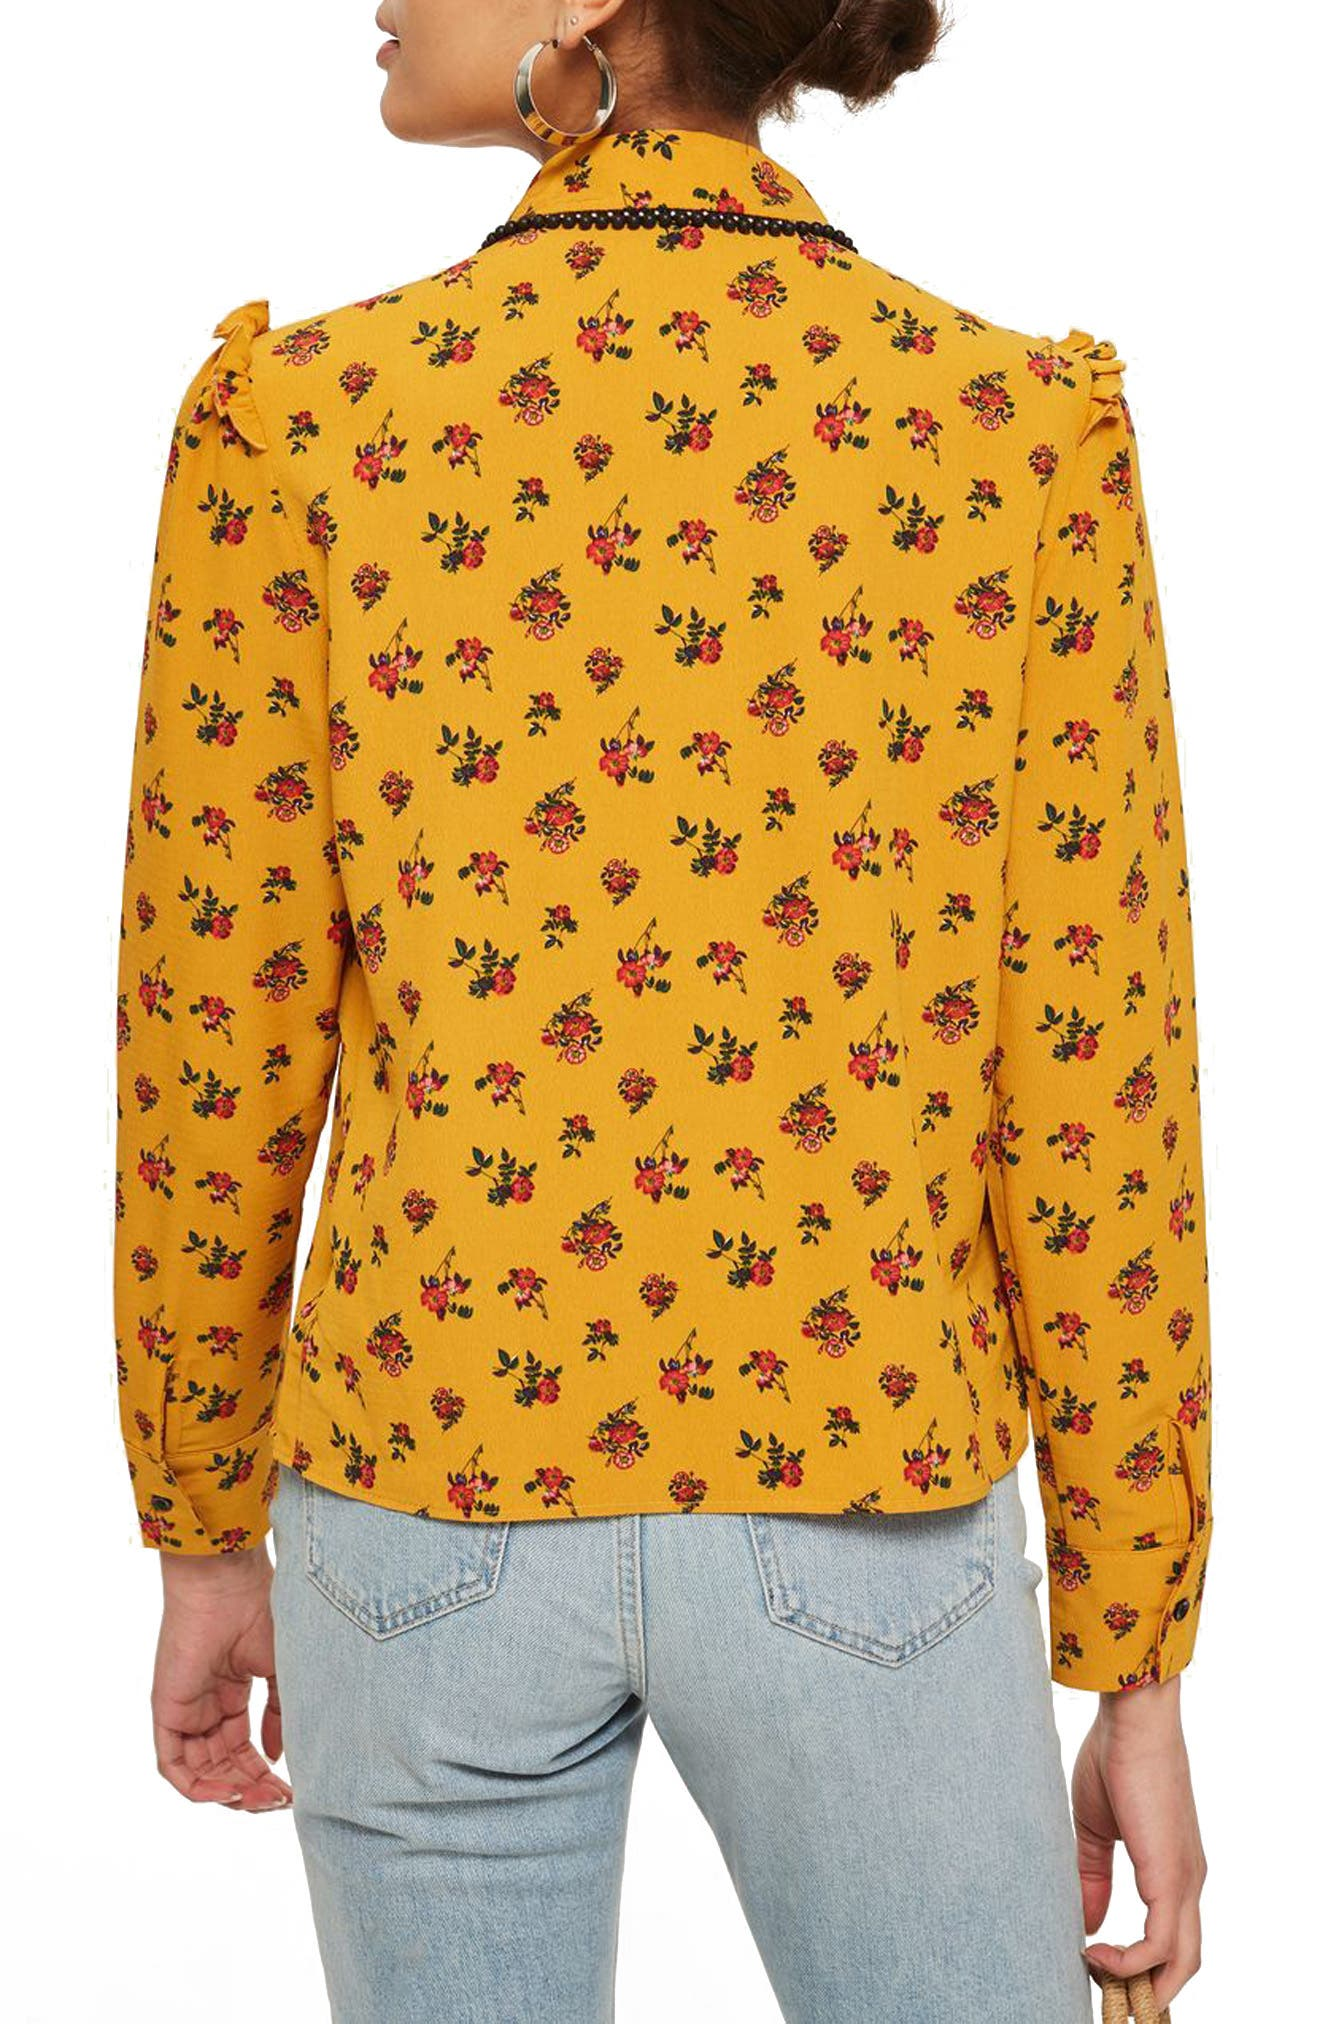 Rodeo Floral Retro Shirt,                             Alternate thumbnail 2, color,                             701